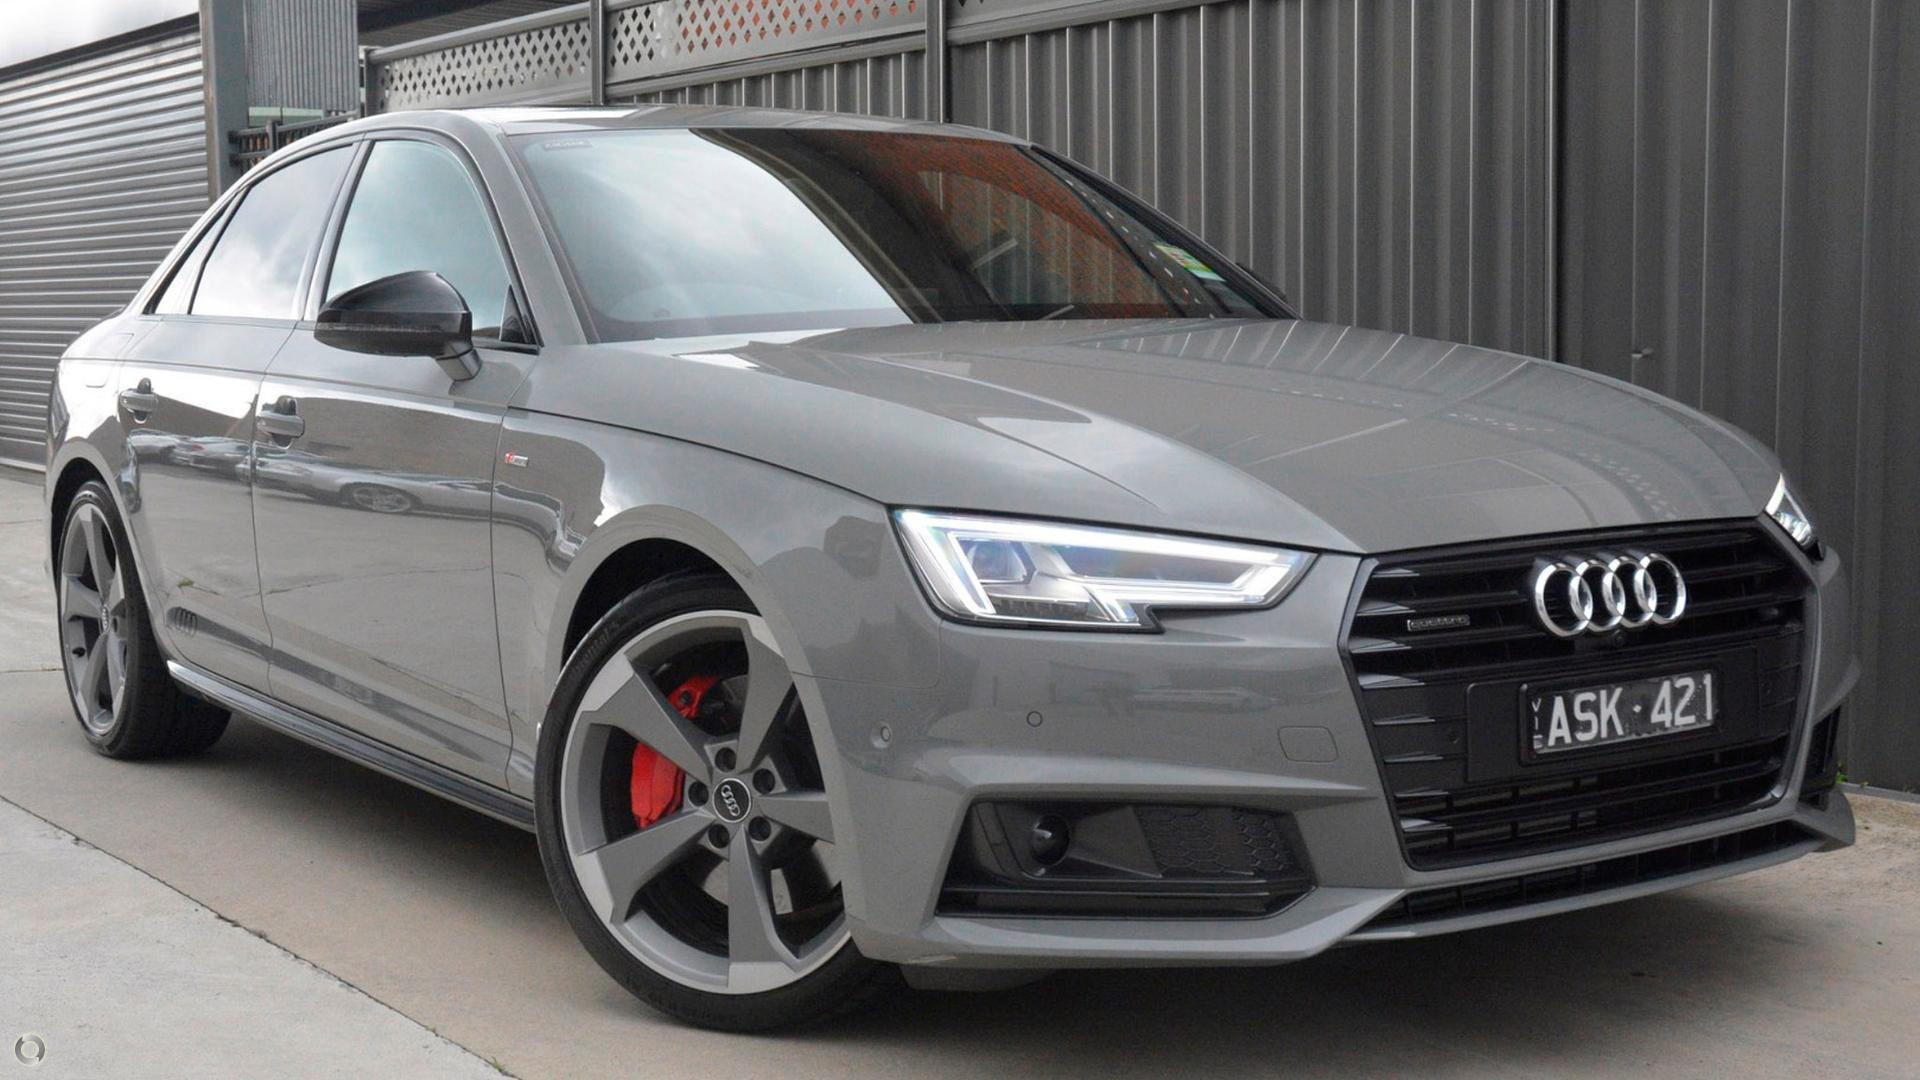 2018 Audi A4 Black Edition B9 - Zagame Automotive